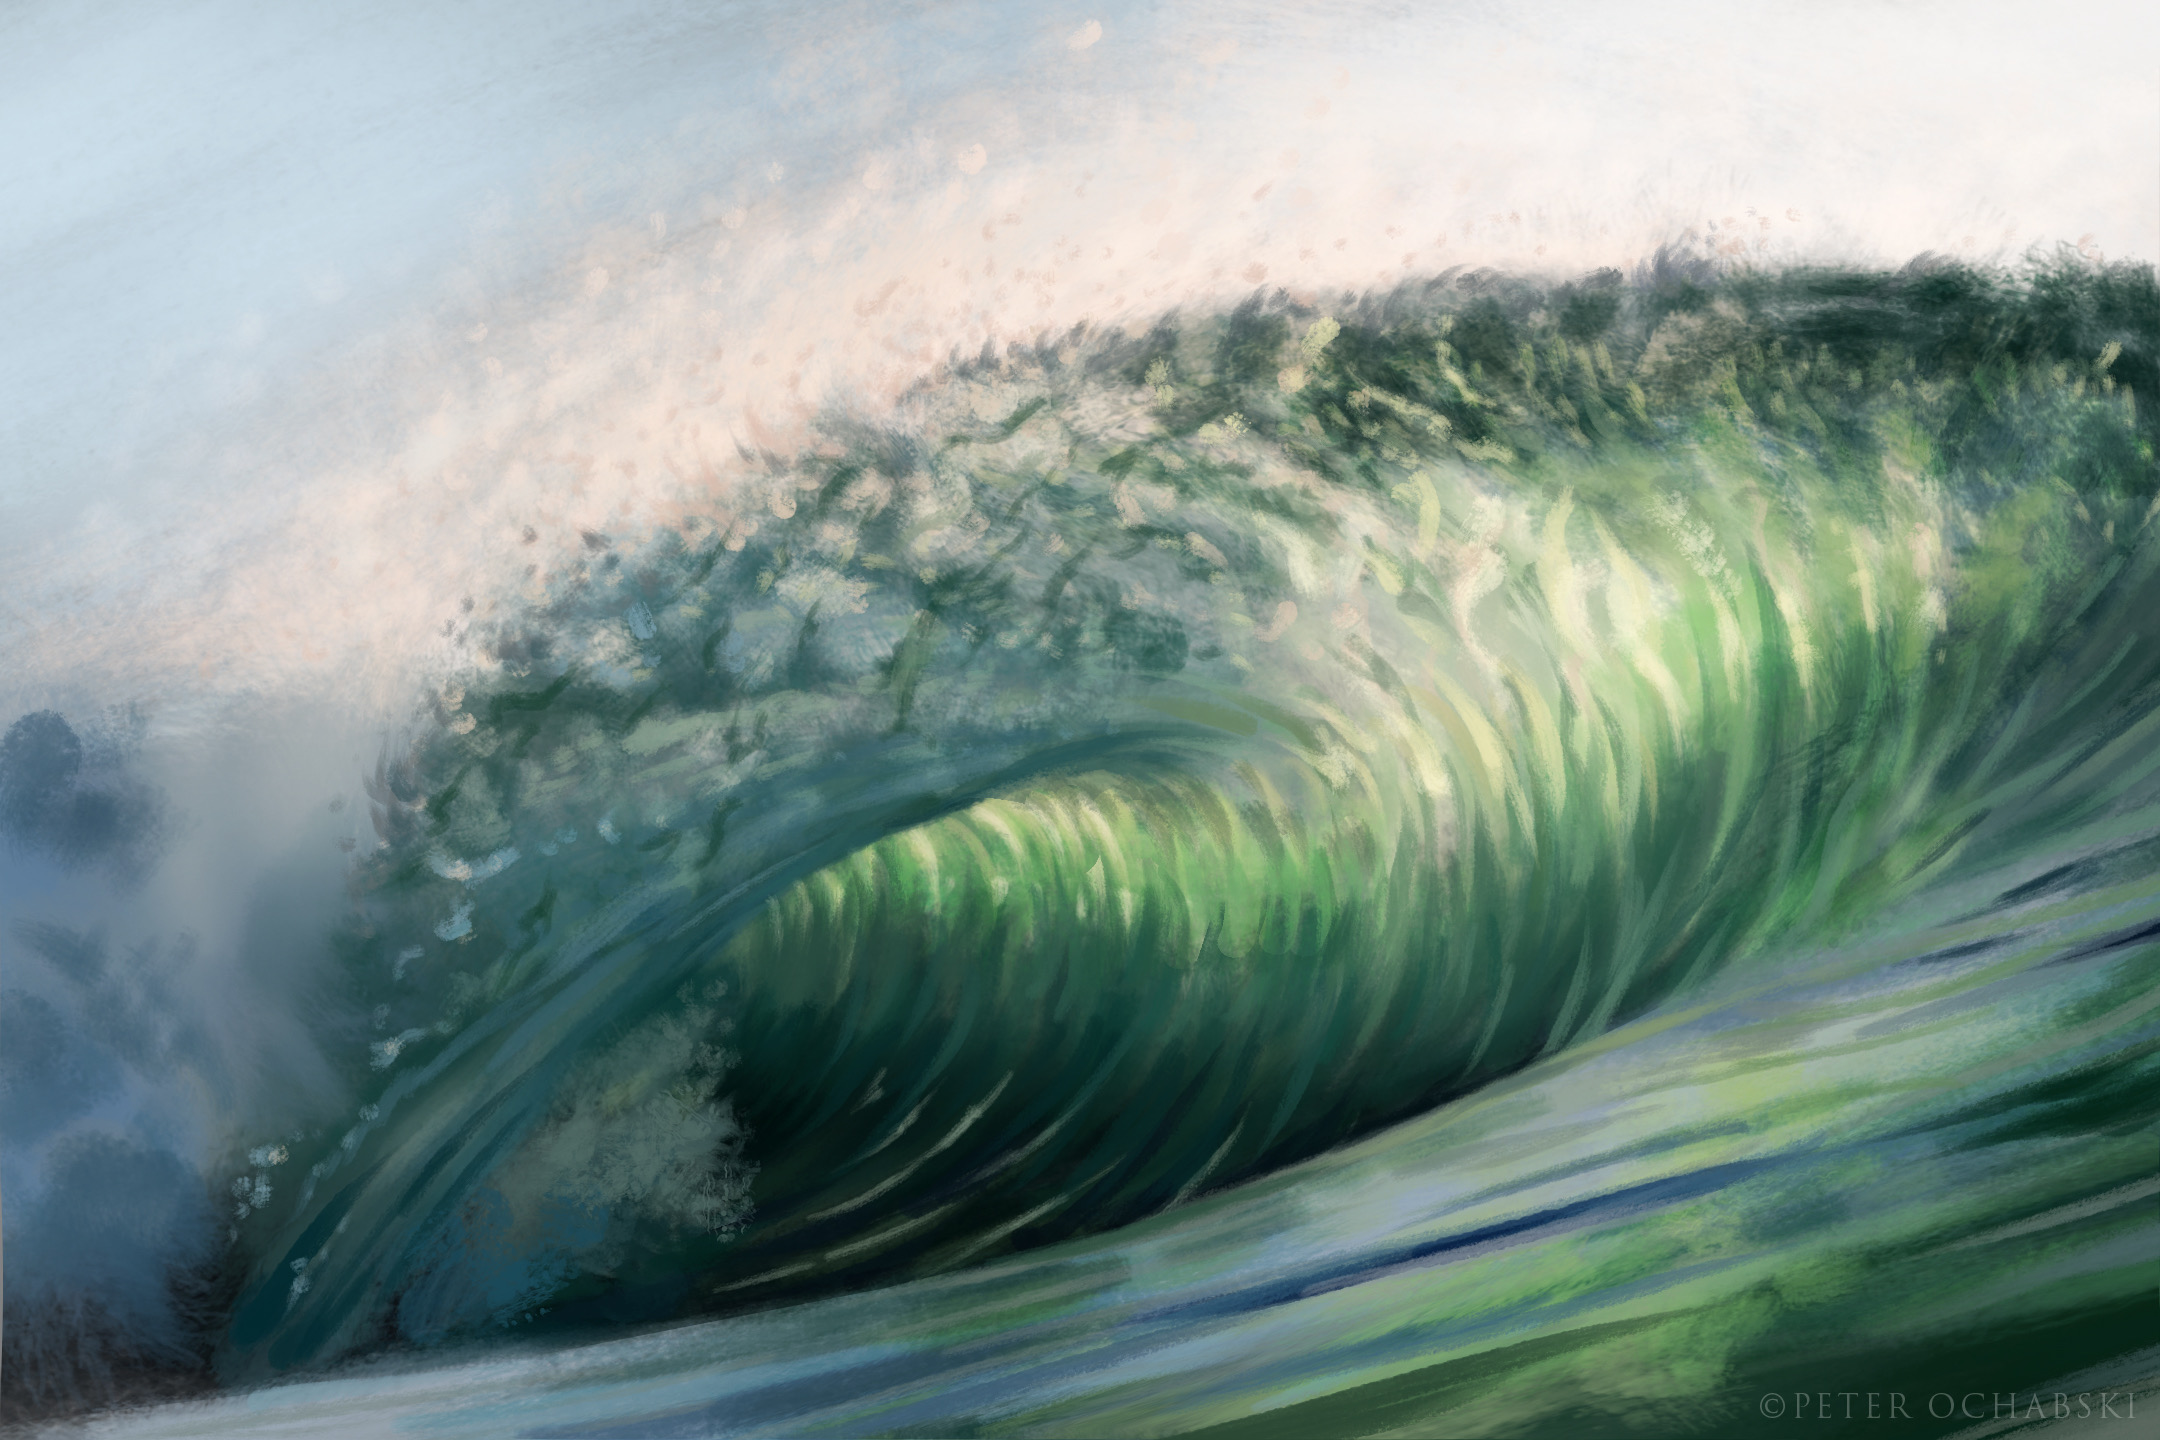 The blue green wave.